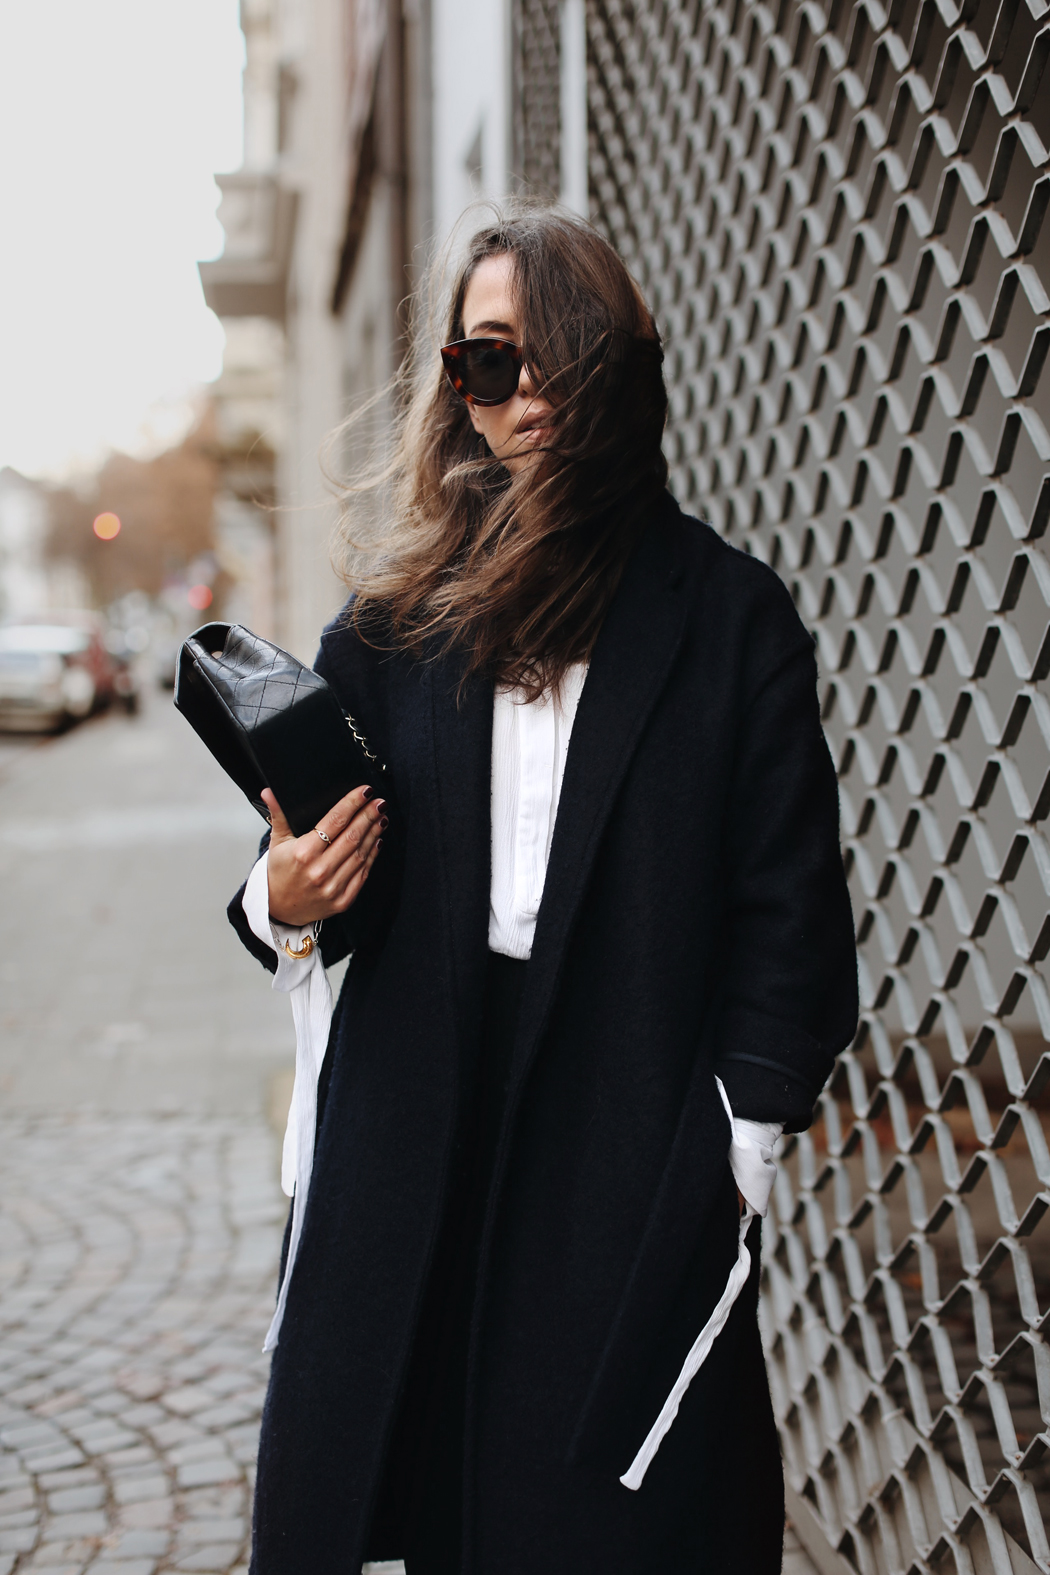 The Dashing Rider Coat Fall Outfit